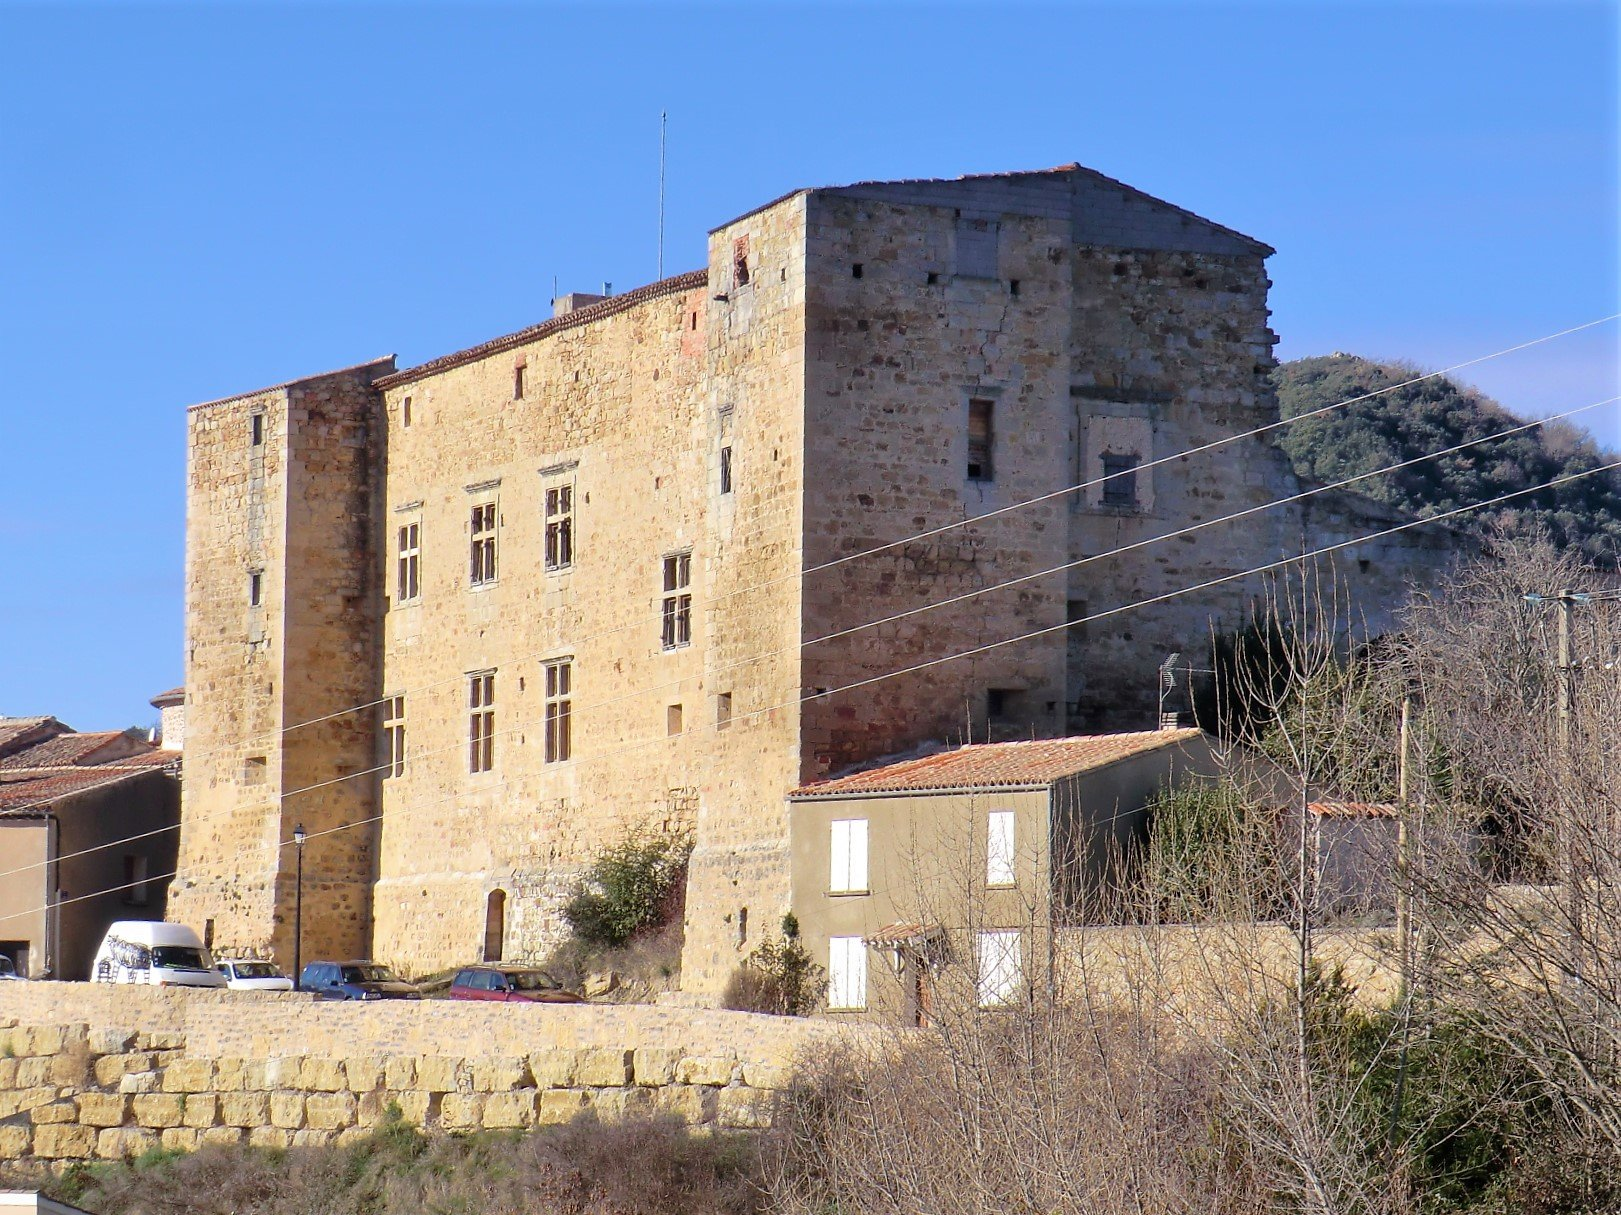 Late Medieval - Early Renaissance Chateau Fort in Dominant Position